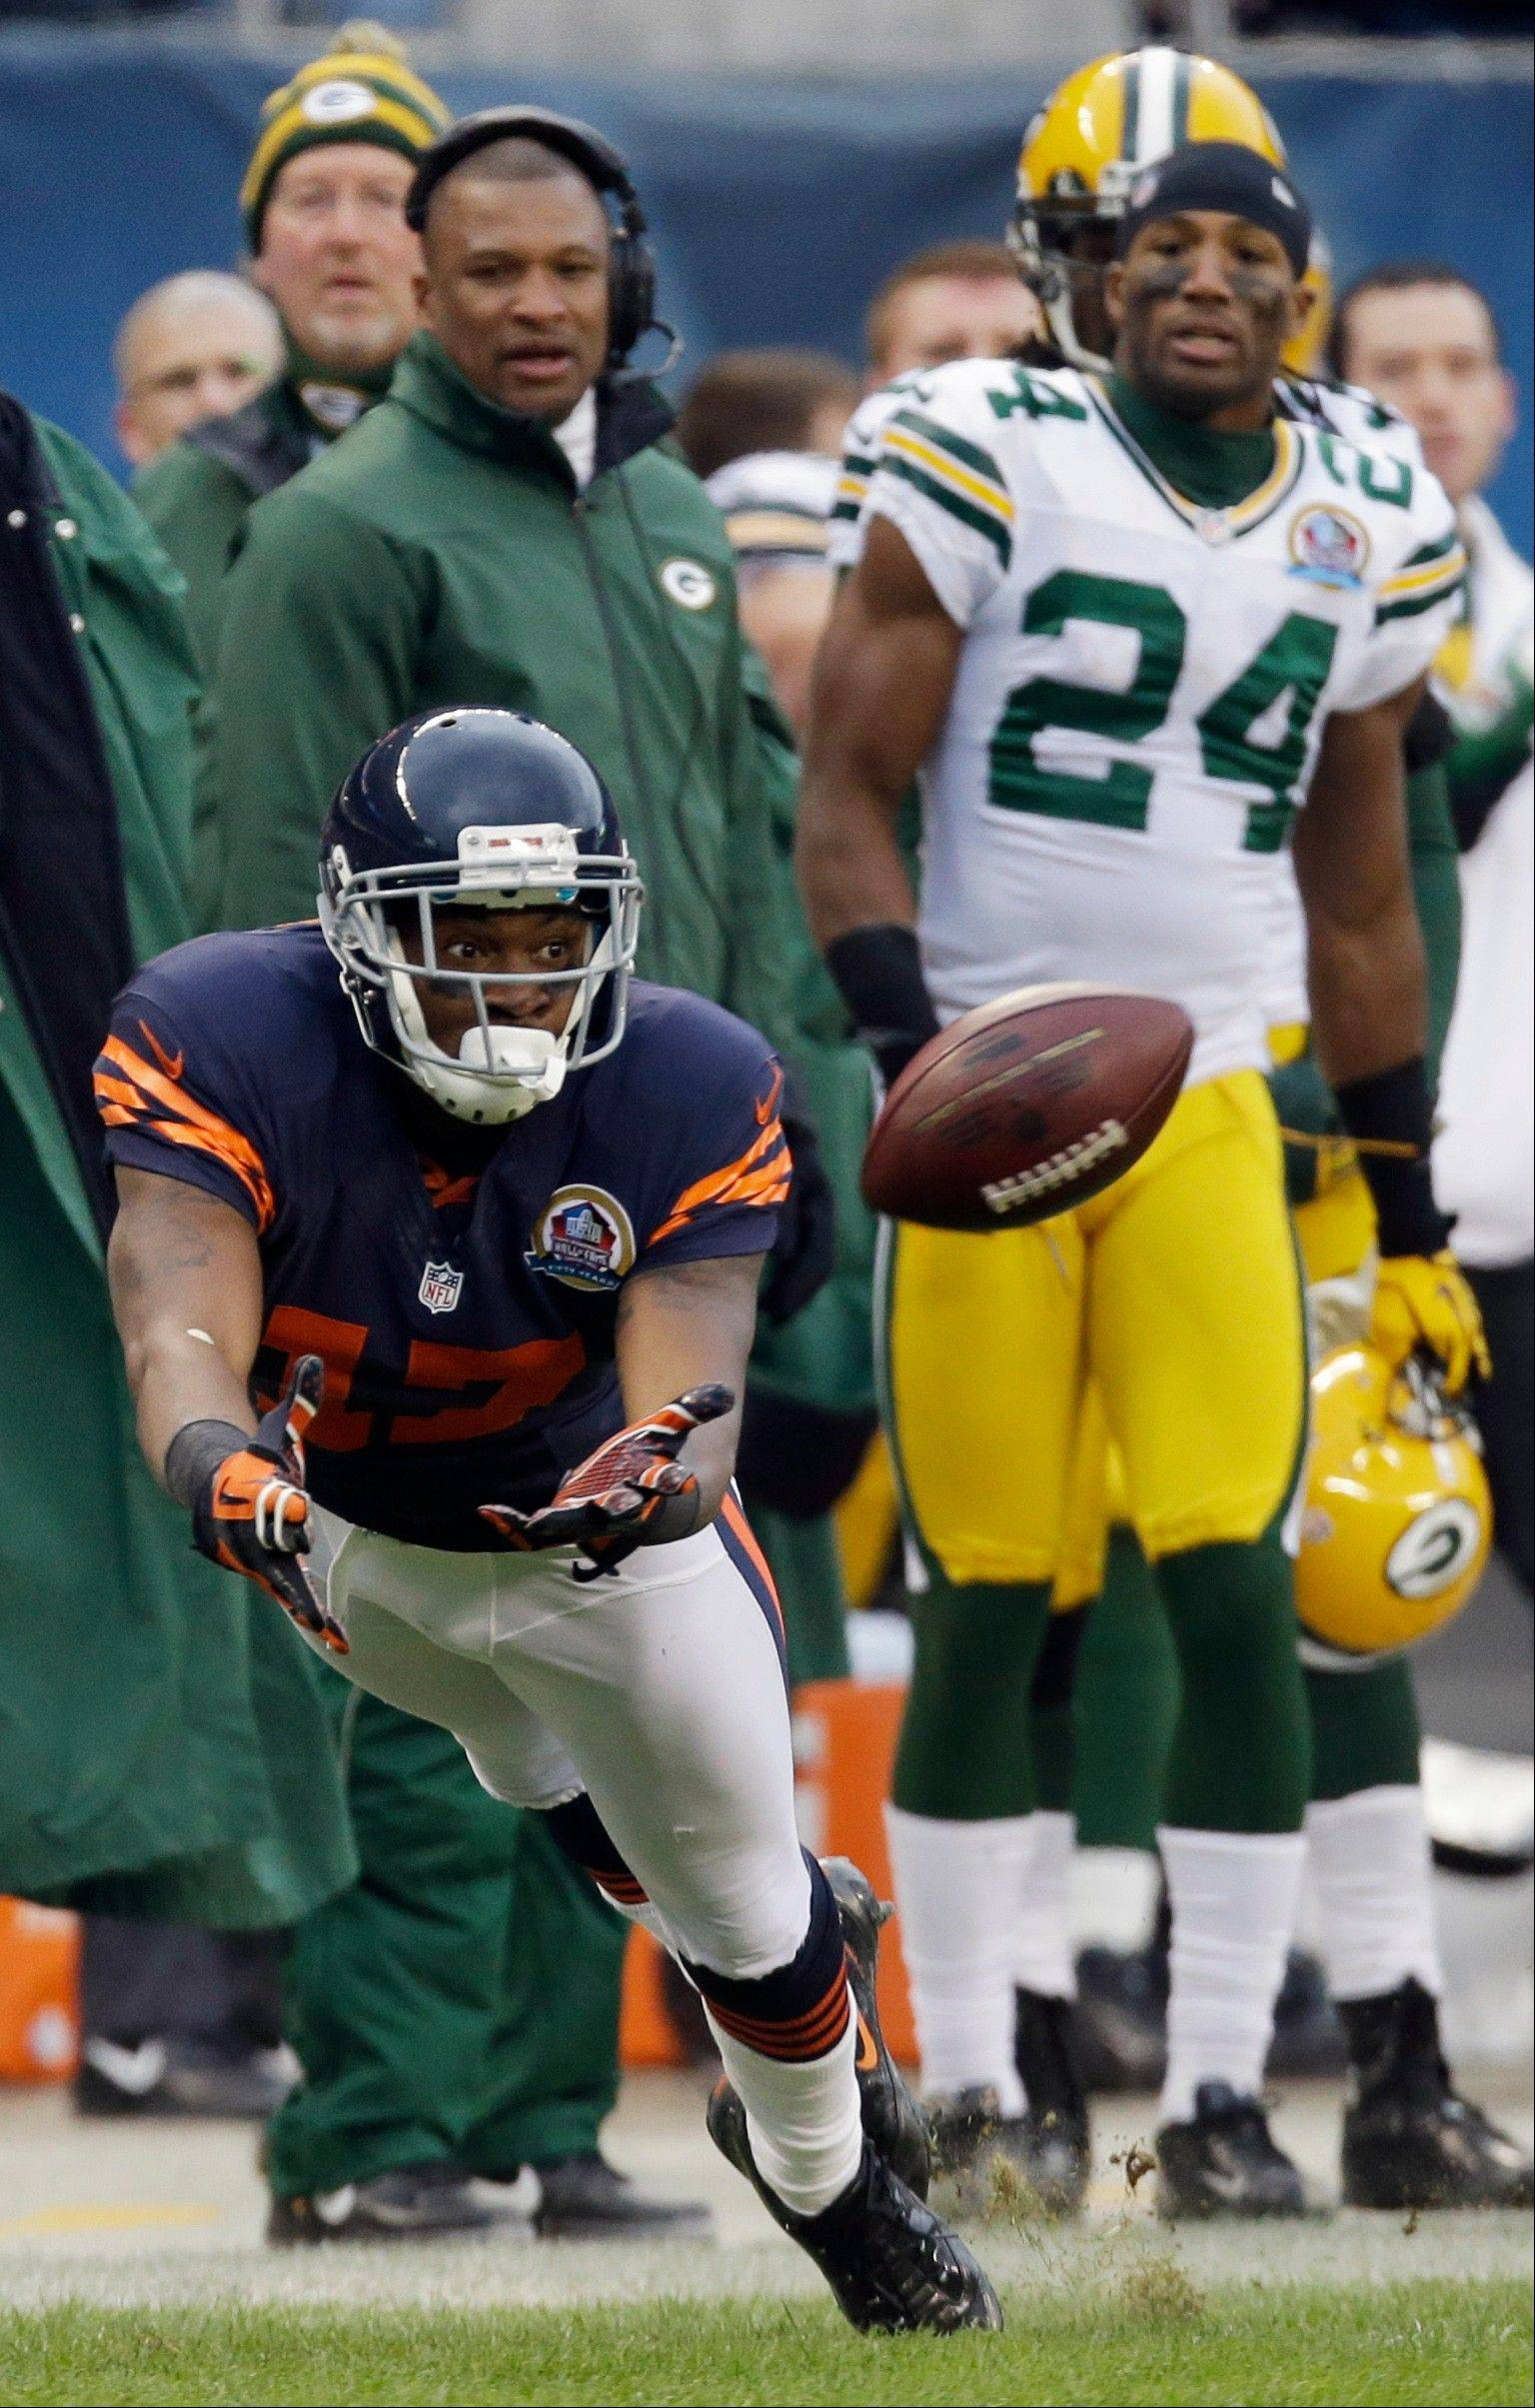 Alshon Jeffery misses a catch in the second half of an NFL football game against the Green Bay Packers in Chicago, Sunday, Dec. 16, 2012. The Packers won 21-13 to clinch the NFC North division title.